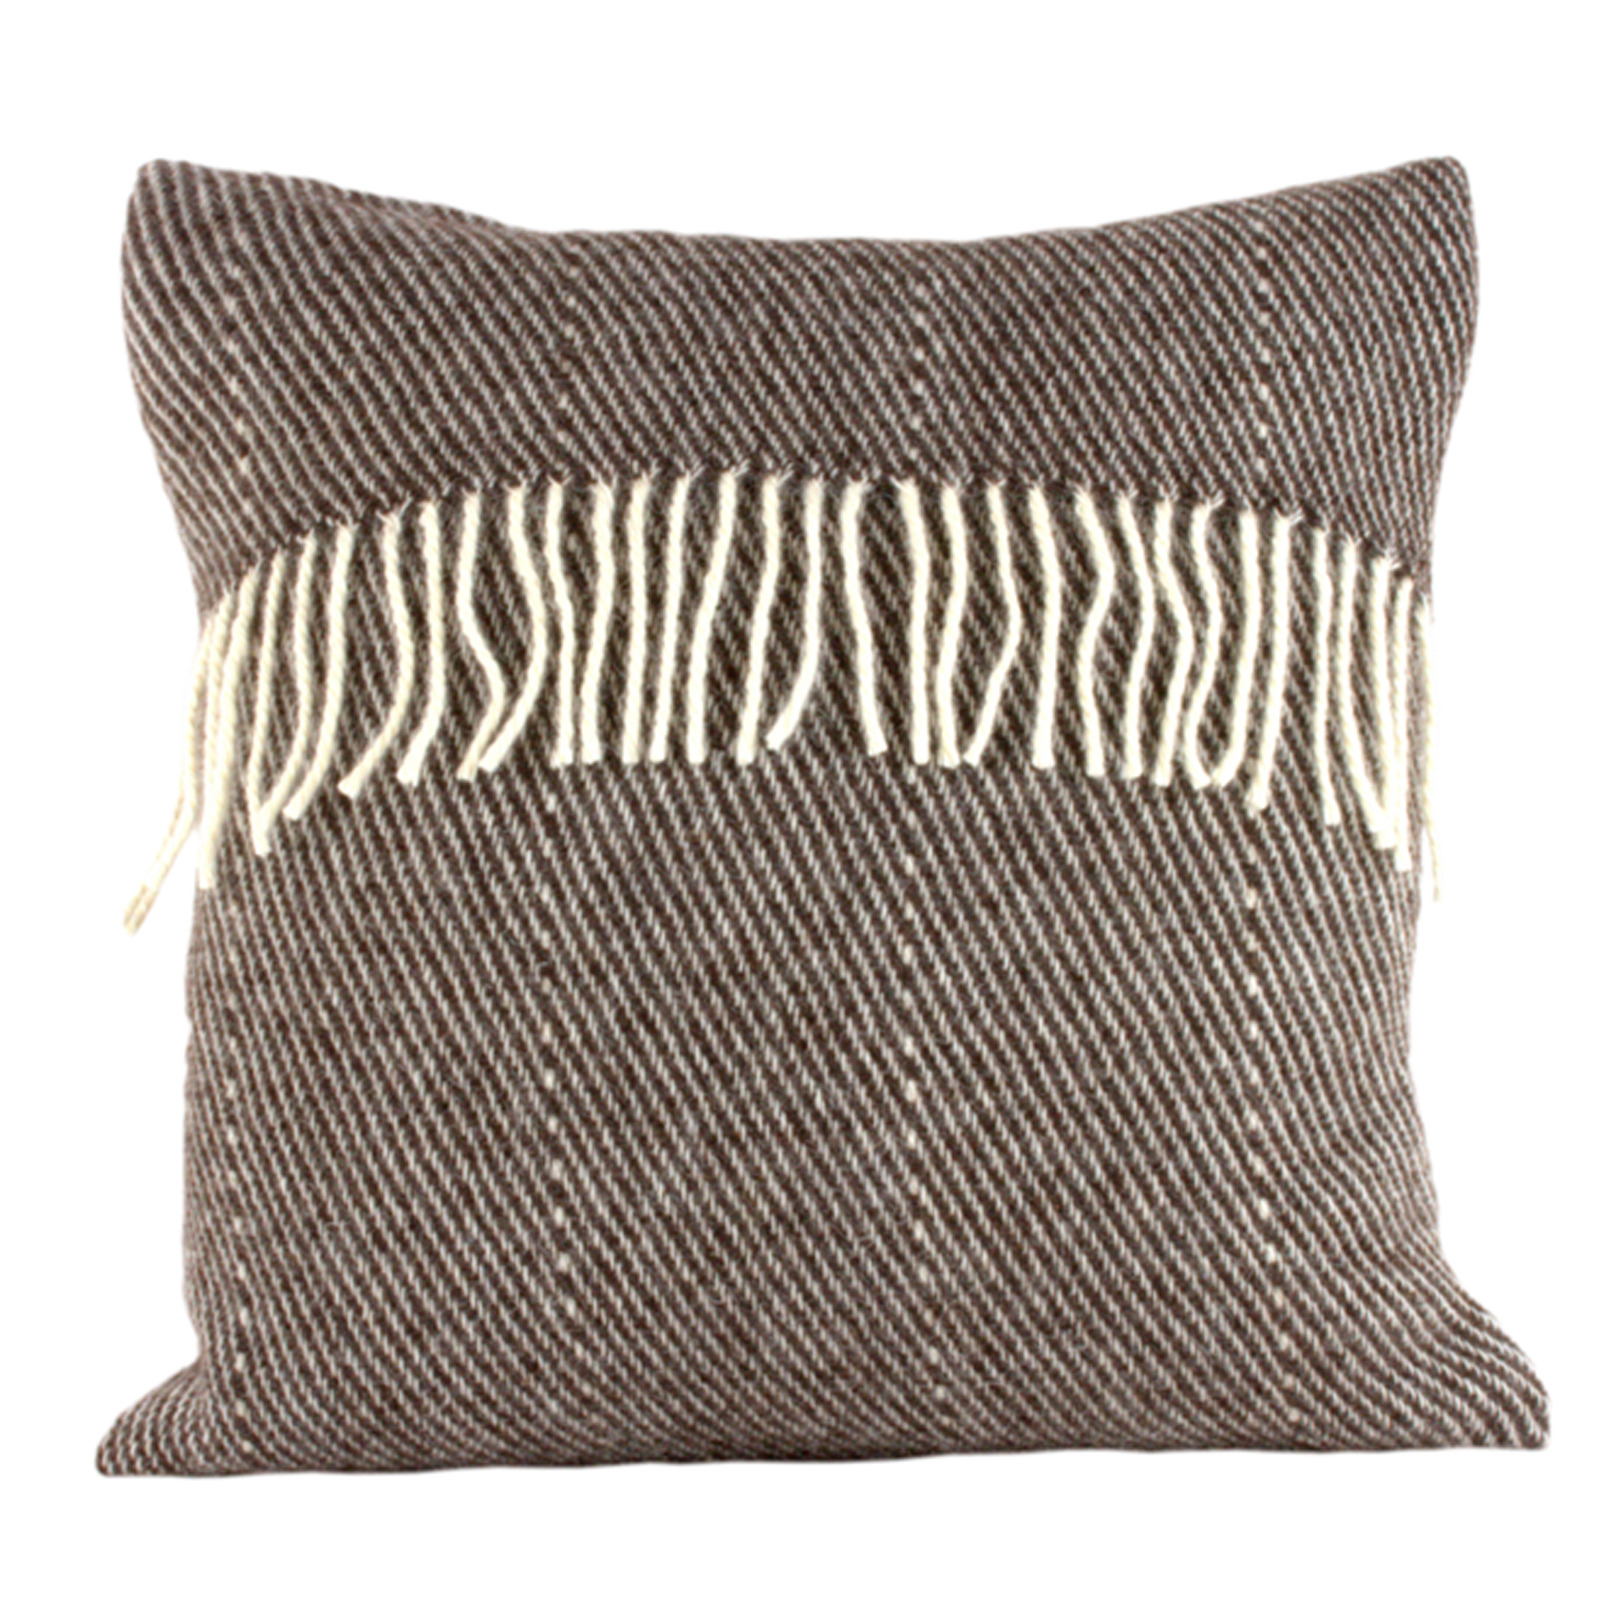 Romney Copperhurst Cushion - Blackthorn